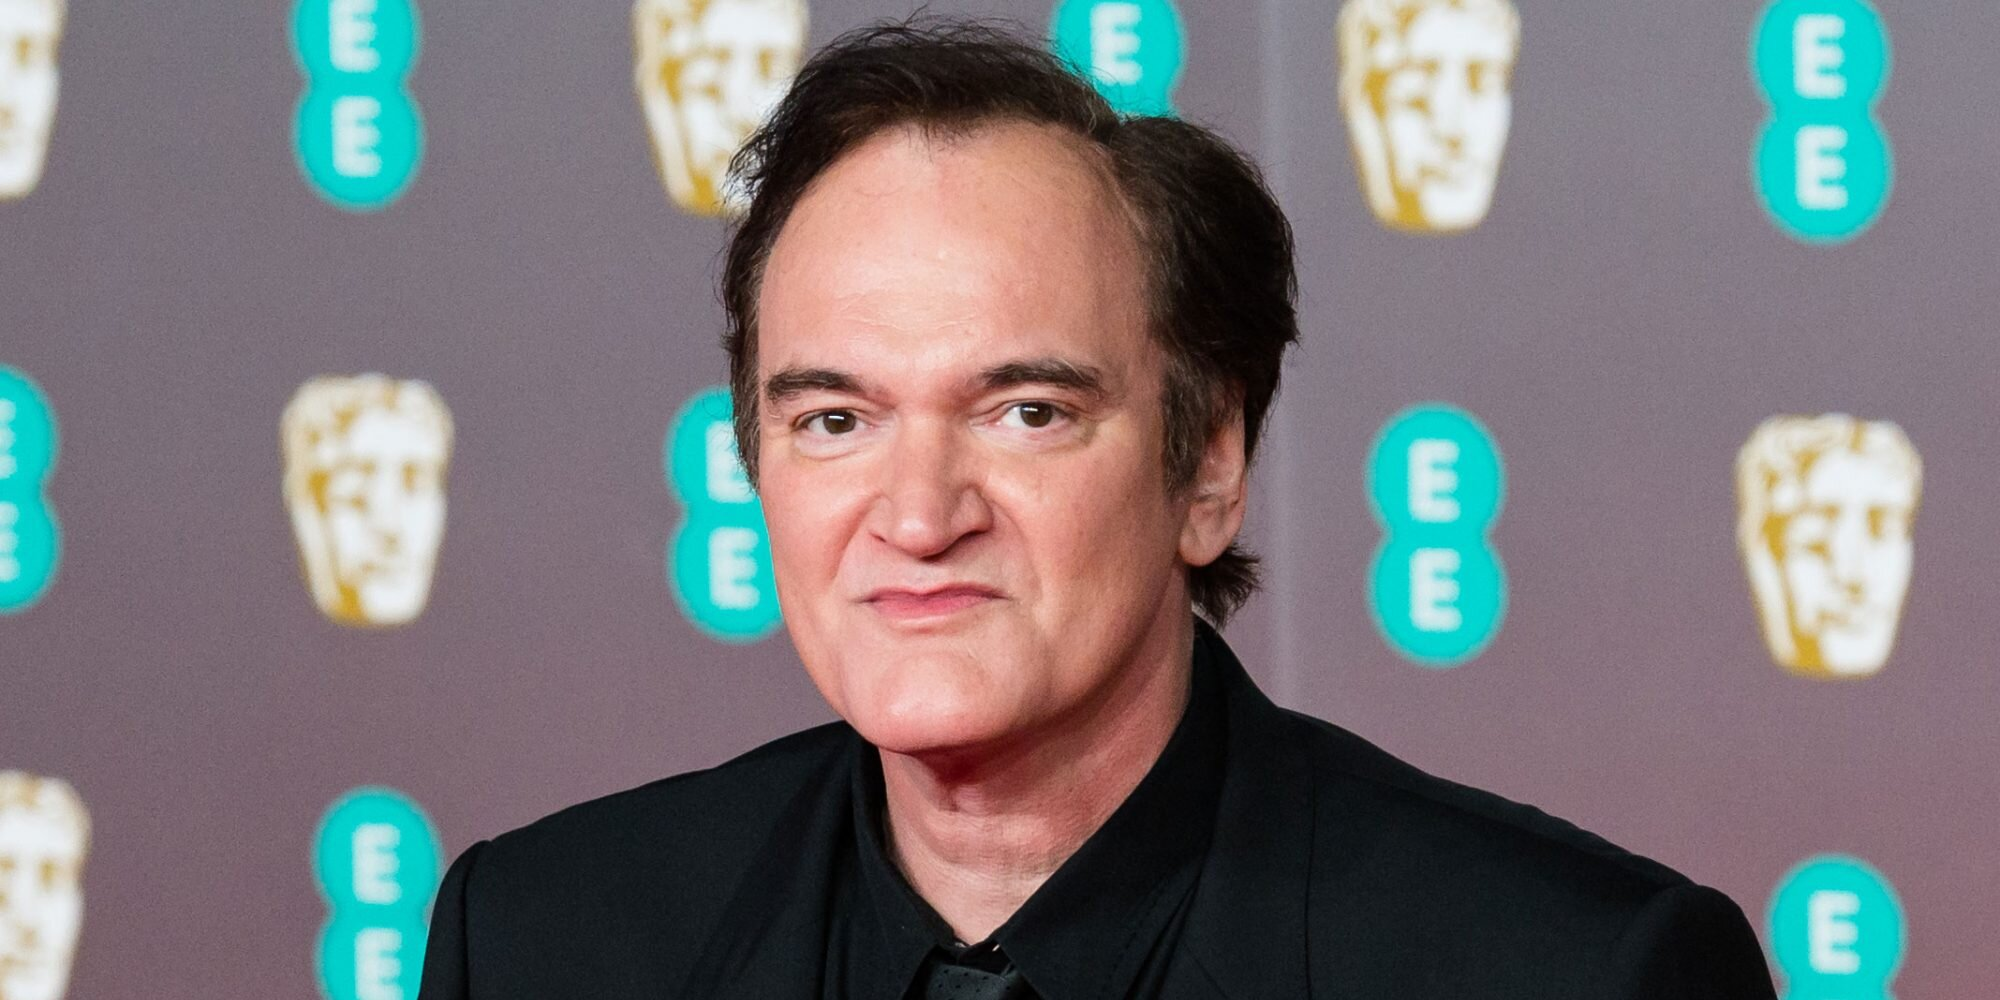 Quentin Tarantino hints (again) at quitting film to avoid making 'horrible last movies'.jpg